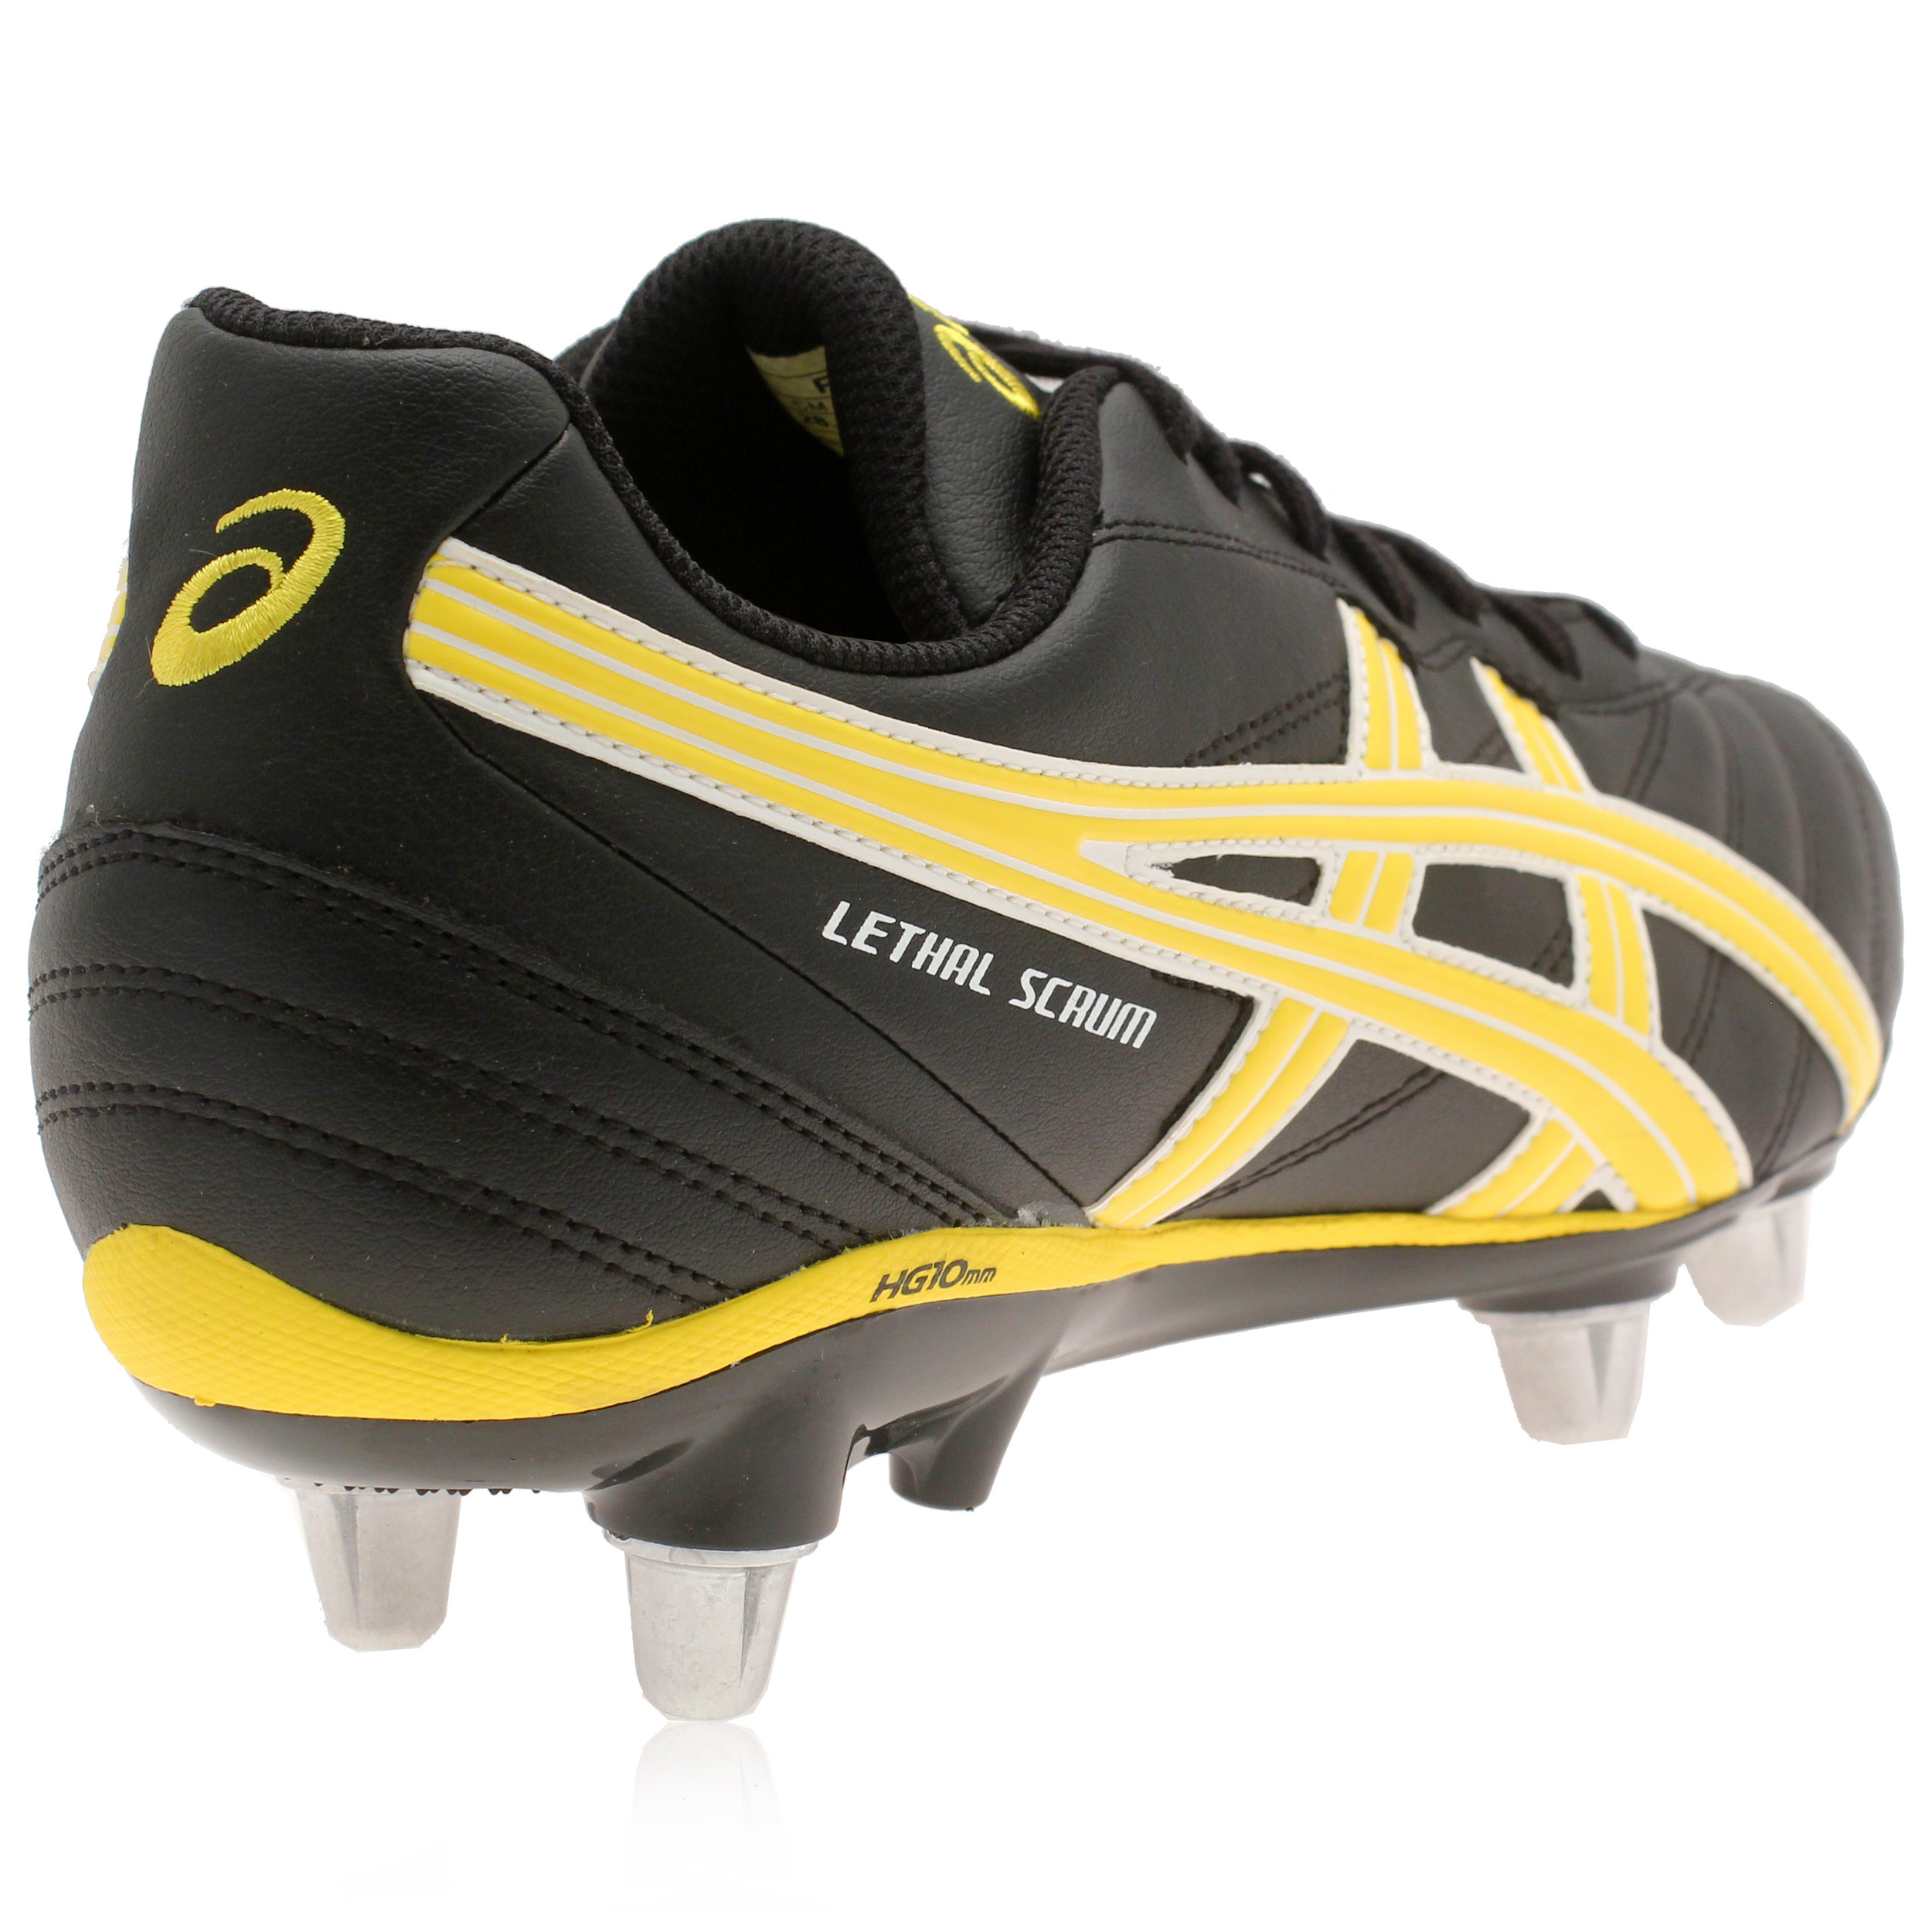 ASICS LETHAL SCRUM Rugby Boots - 20% Off